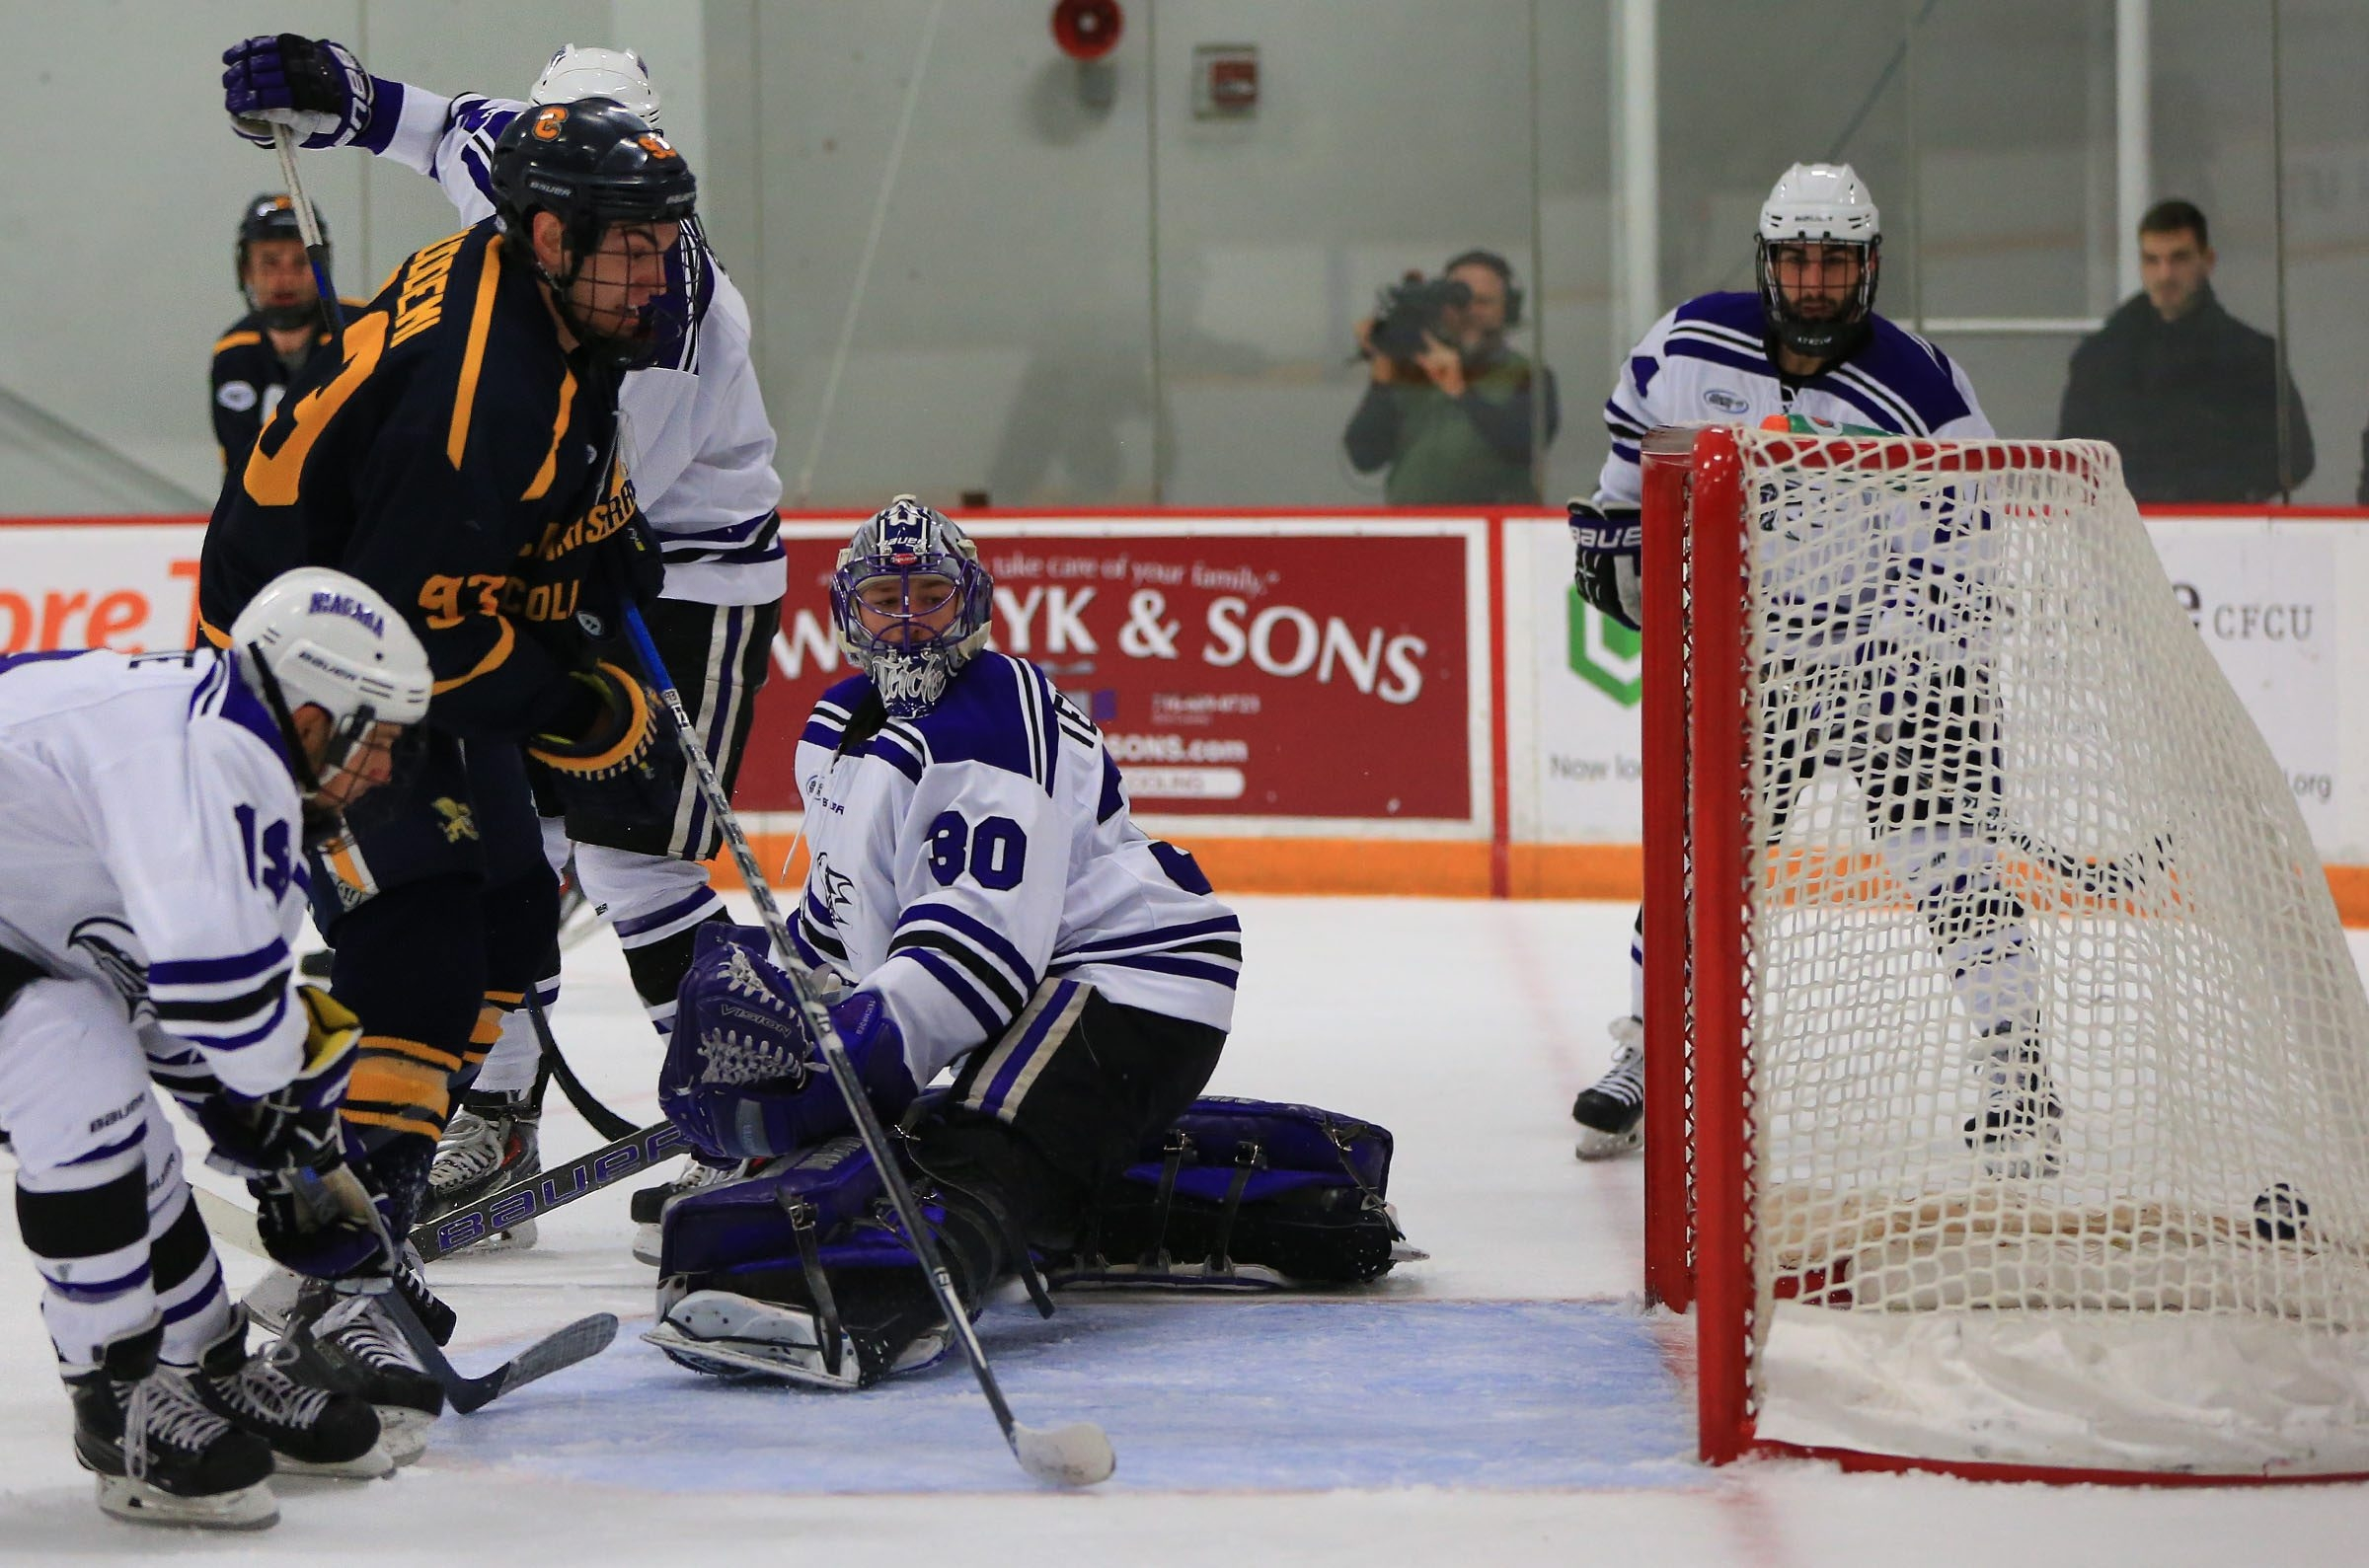 Ralph Cuddemi (93) of Canisius scores against Niagara goaltender Jackson Teichroeb during first-period action at Dwyer Arena.